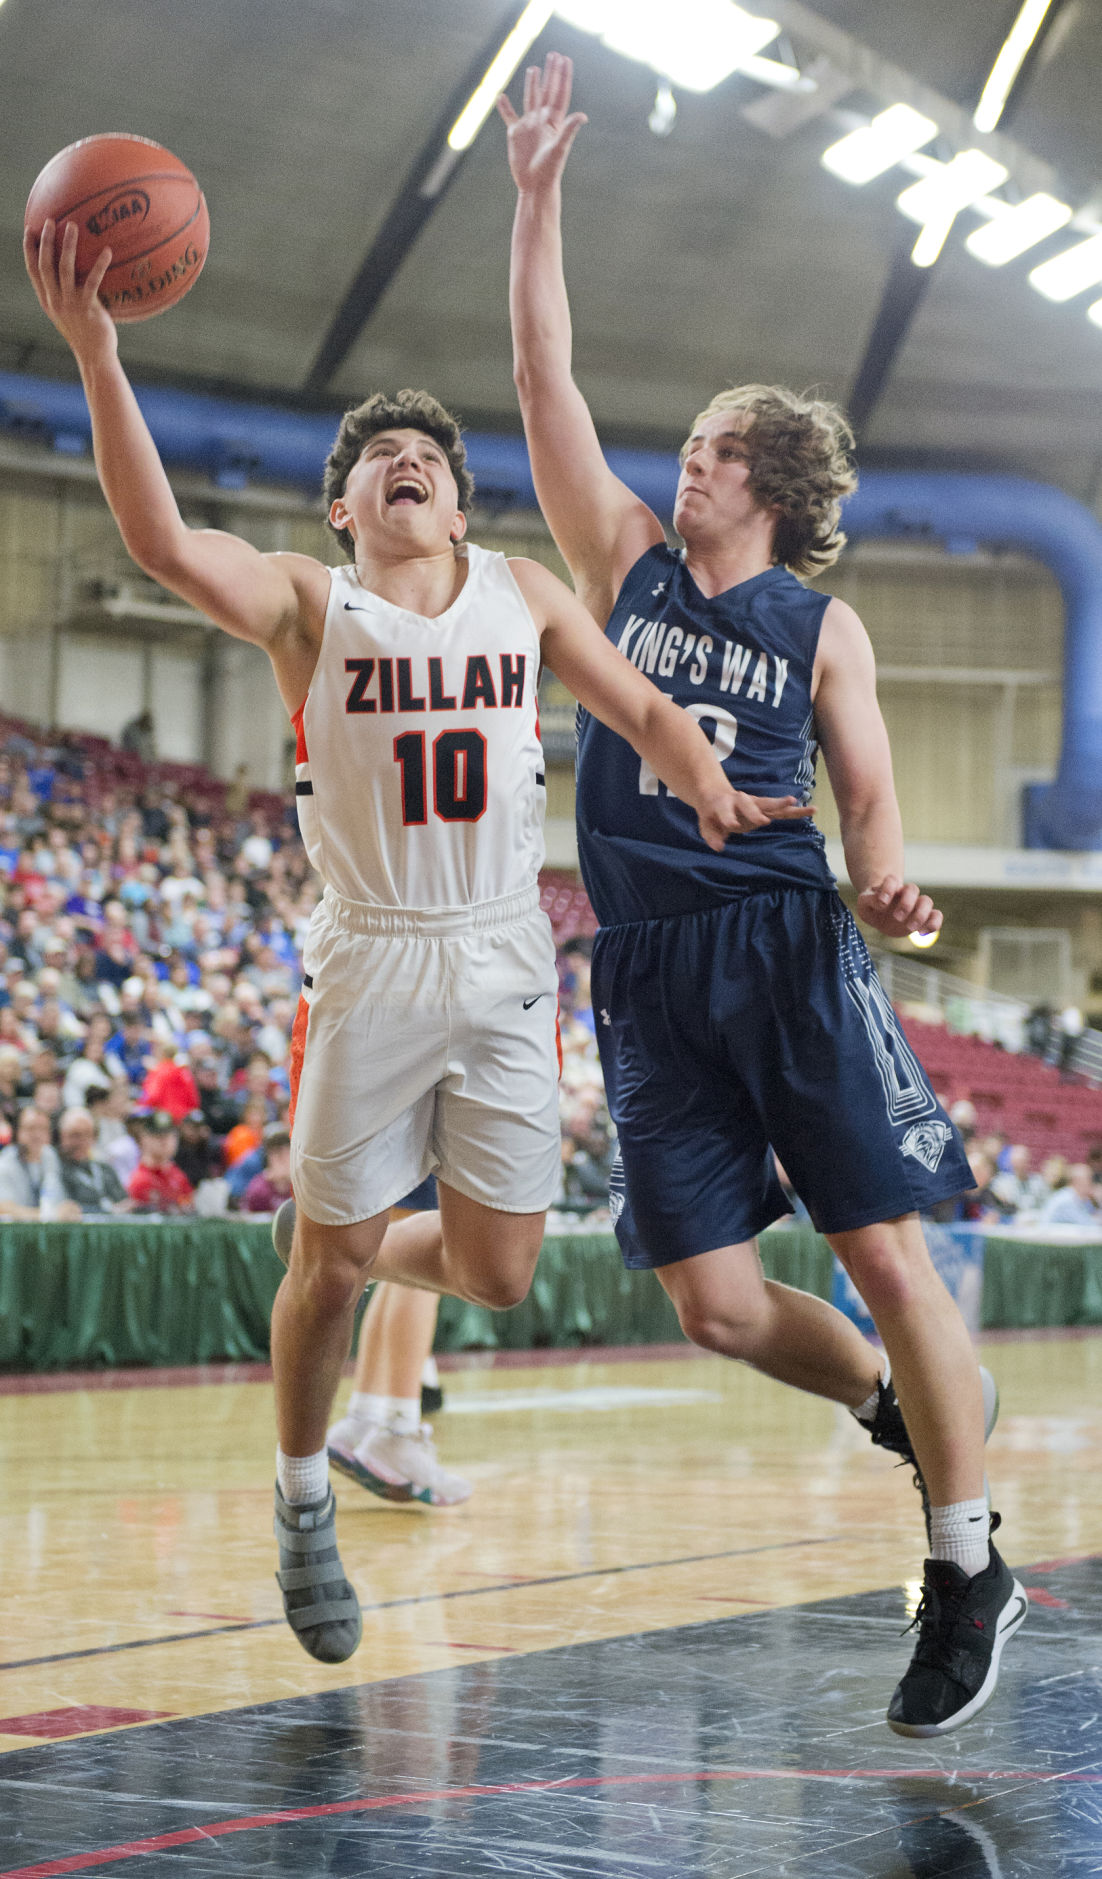 Zillah wins 1A Hardwood Classic Championship for Max